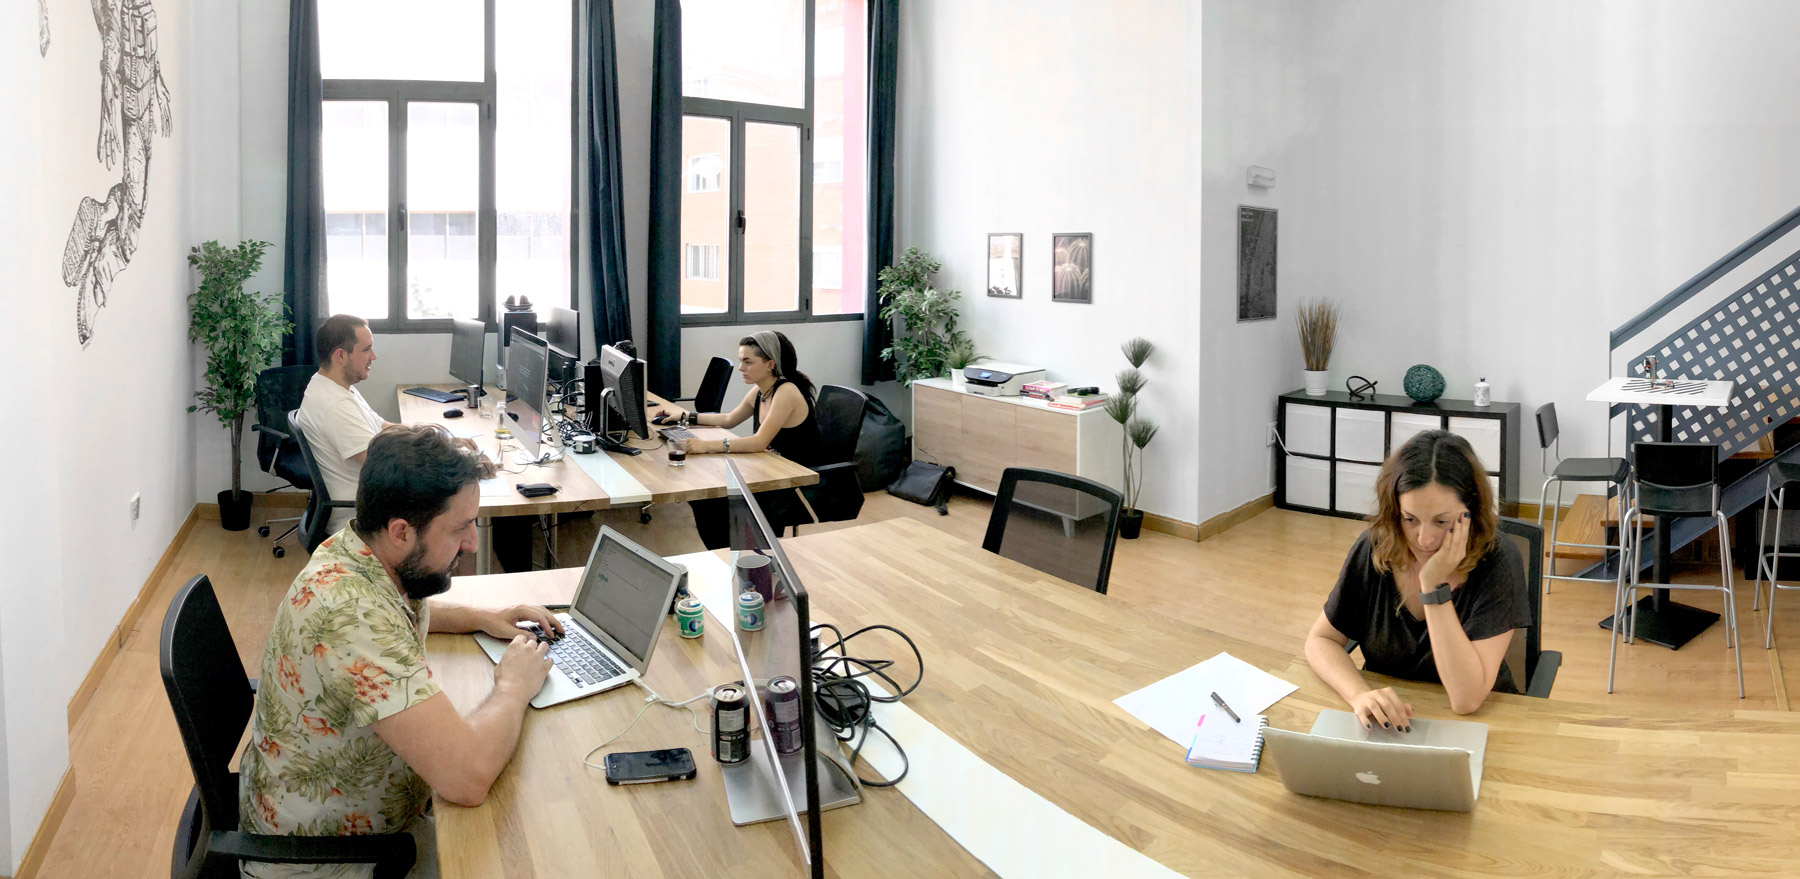 w8rk – Coworking in Motion